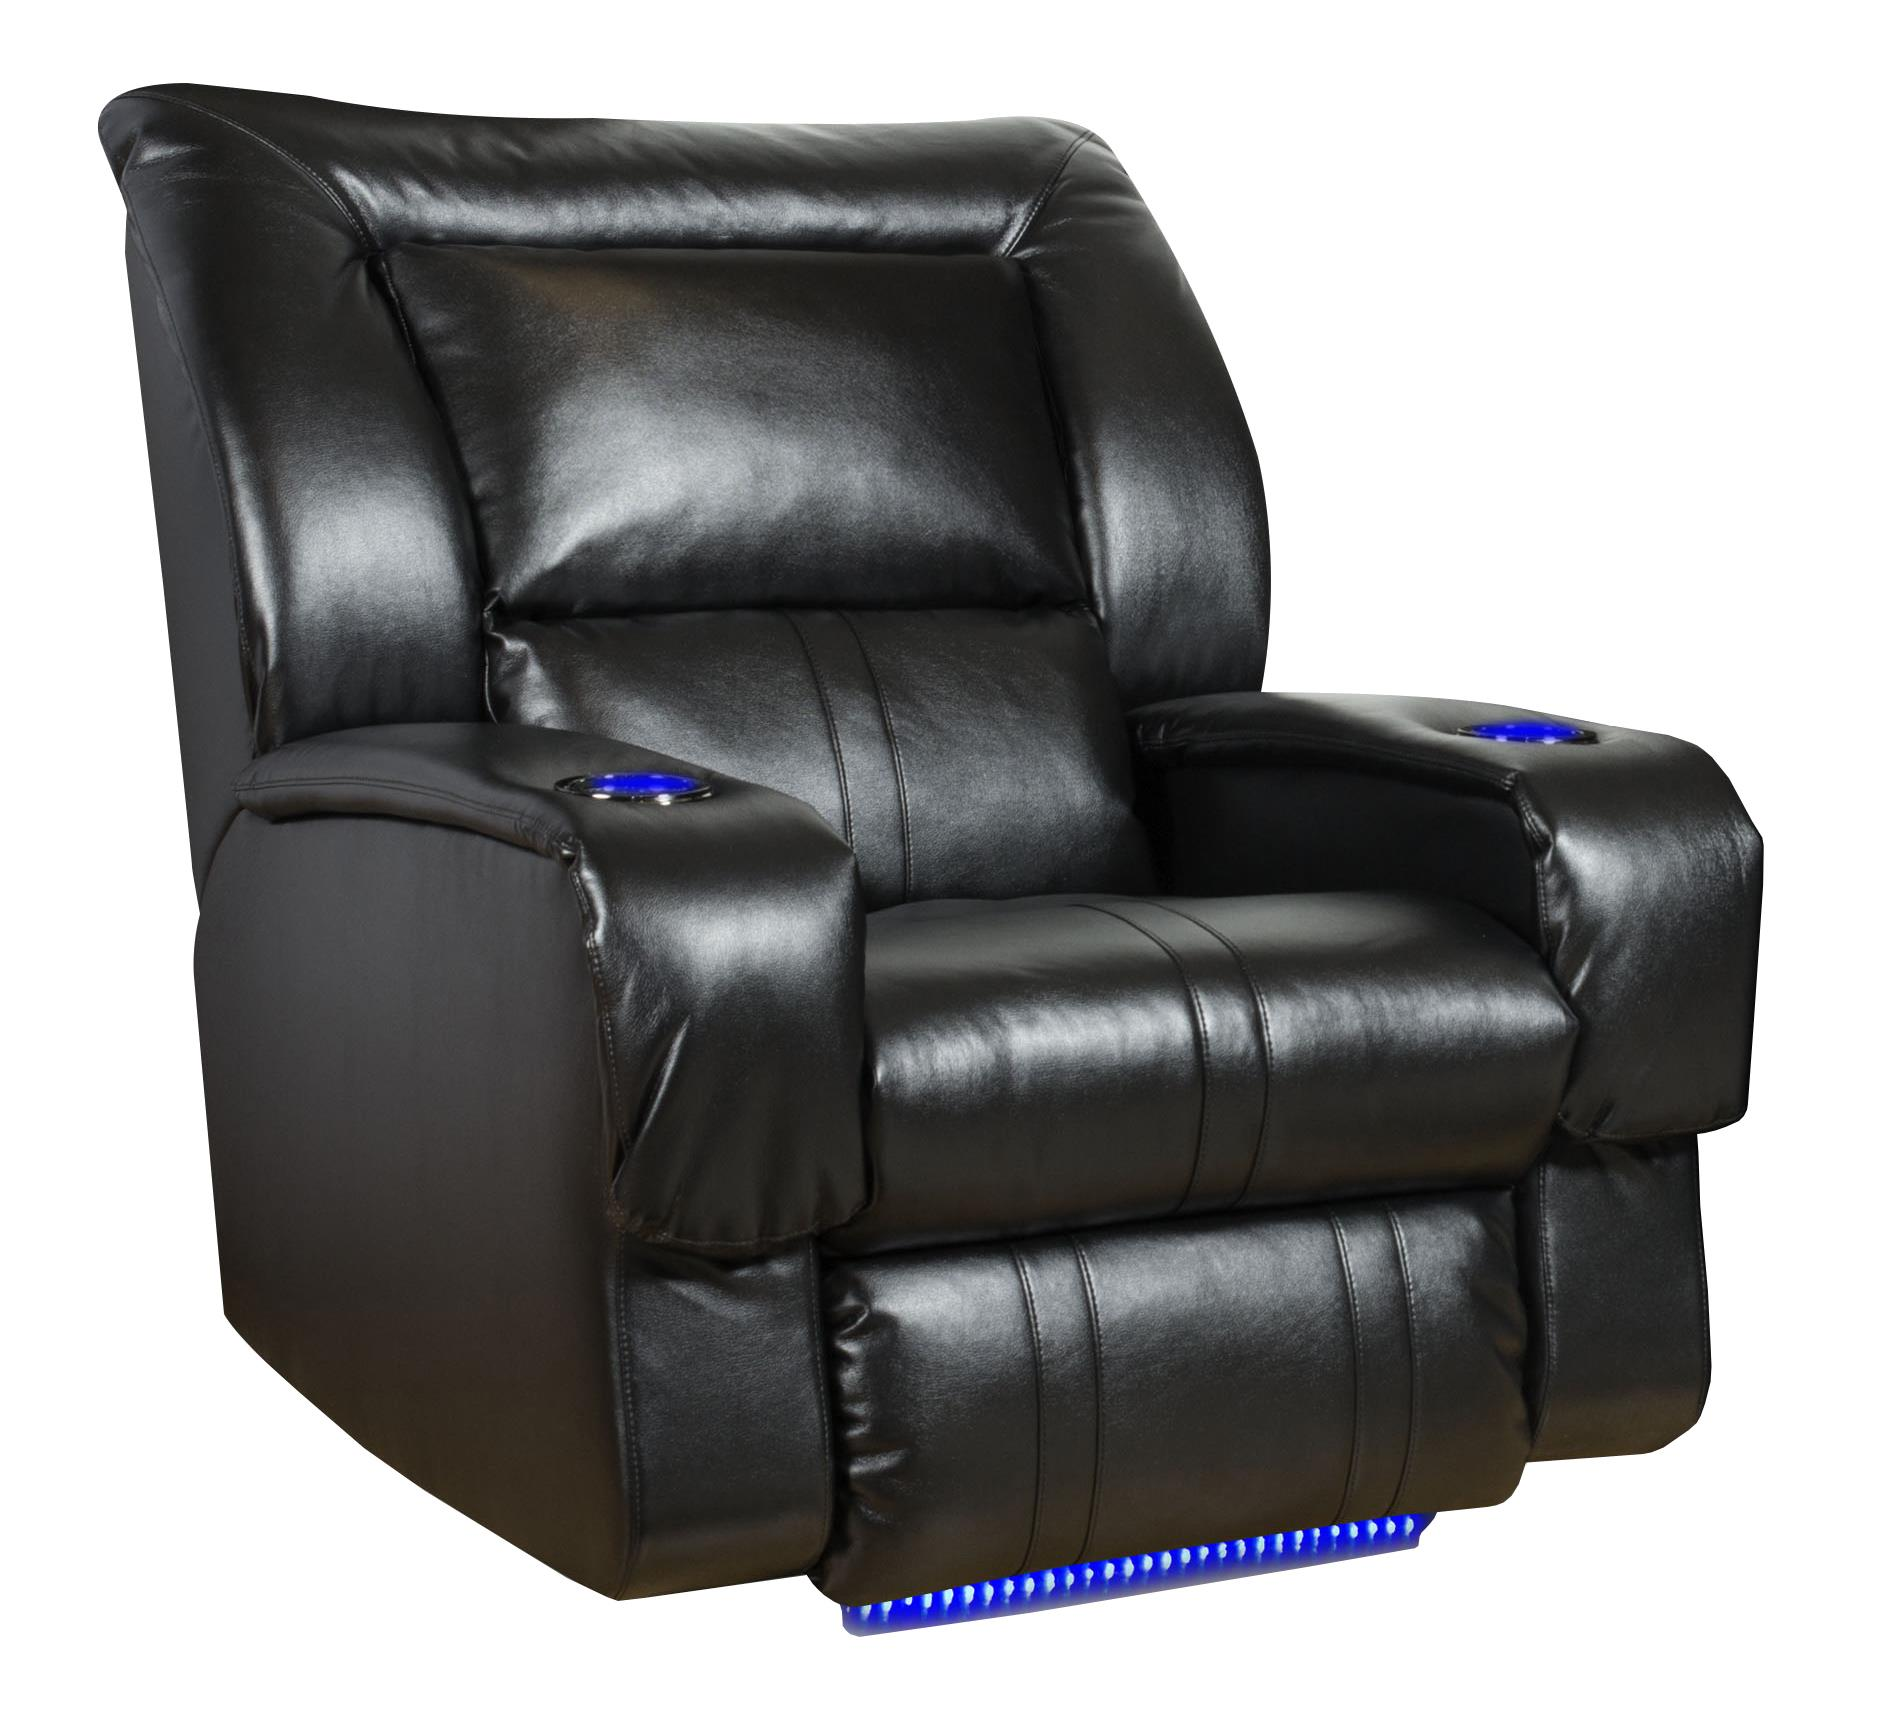 Roxie Wall Hugger Recliner w/ Lights & Cup-Holders by Southern Motion at Hudson's Furniture